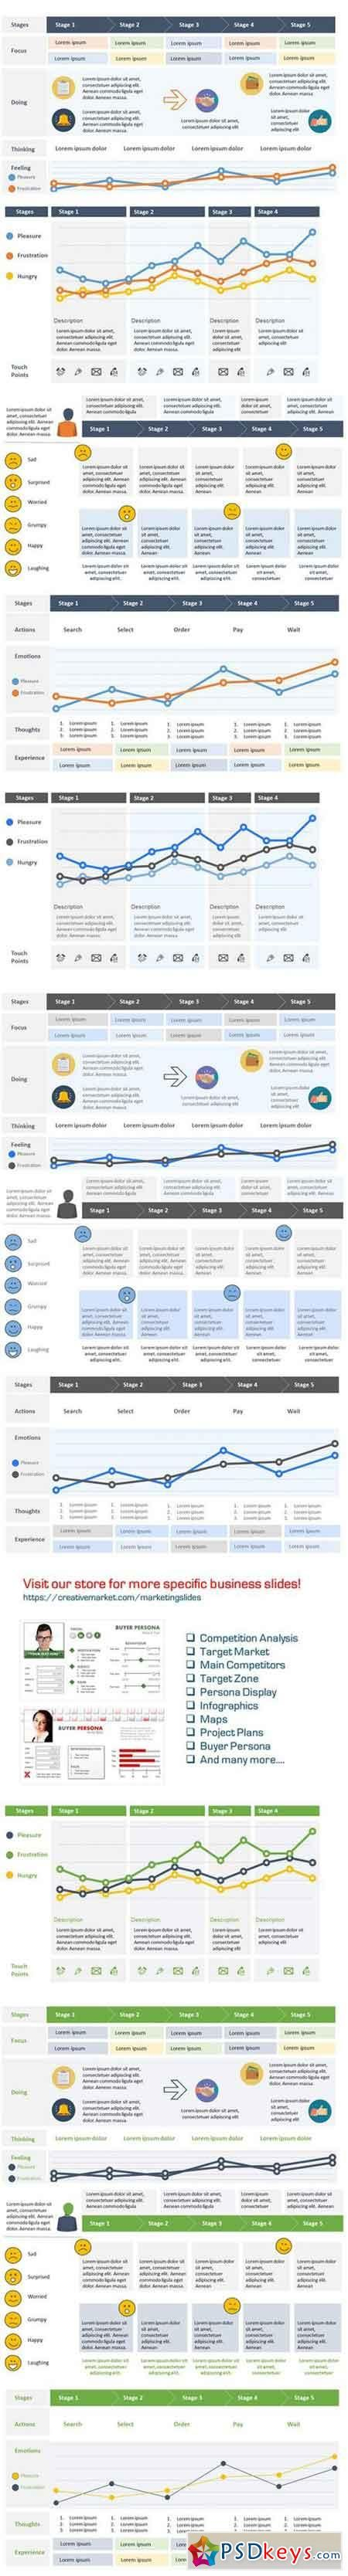 Customer Experience Map PowerPoint 703972